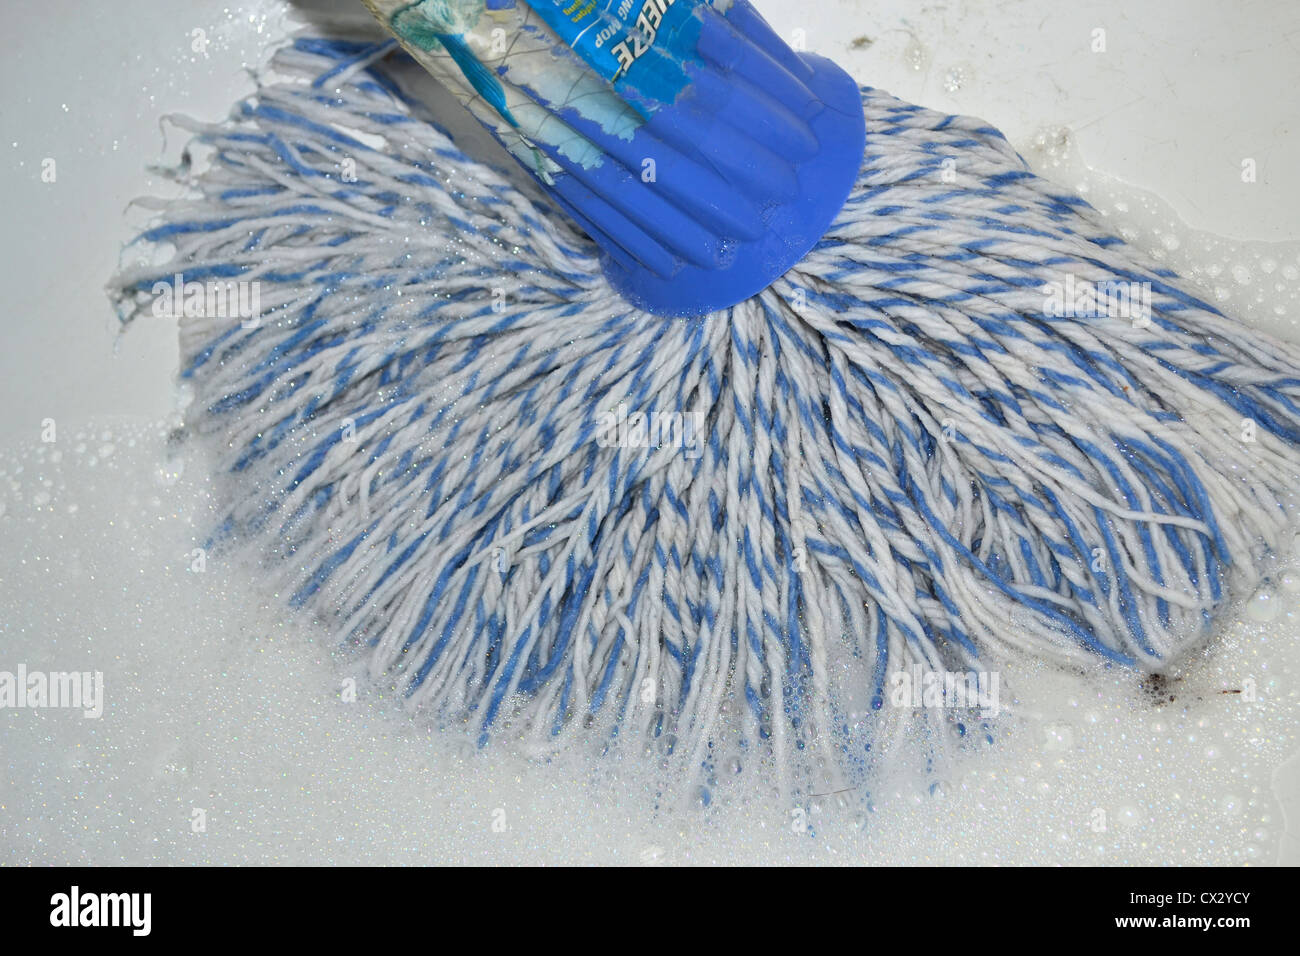 cleaning floor with a mop - Stock Image